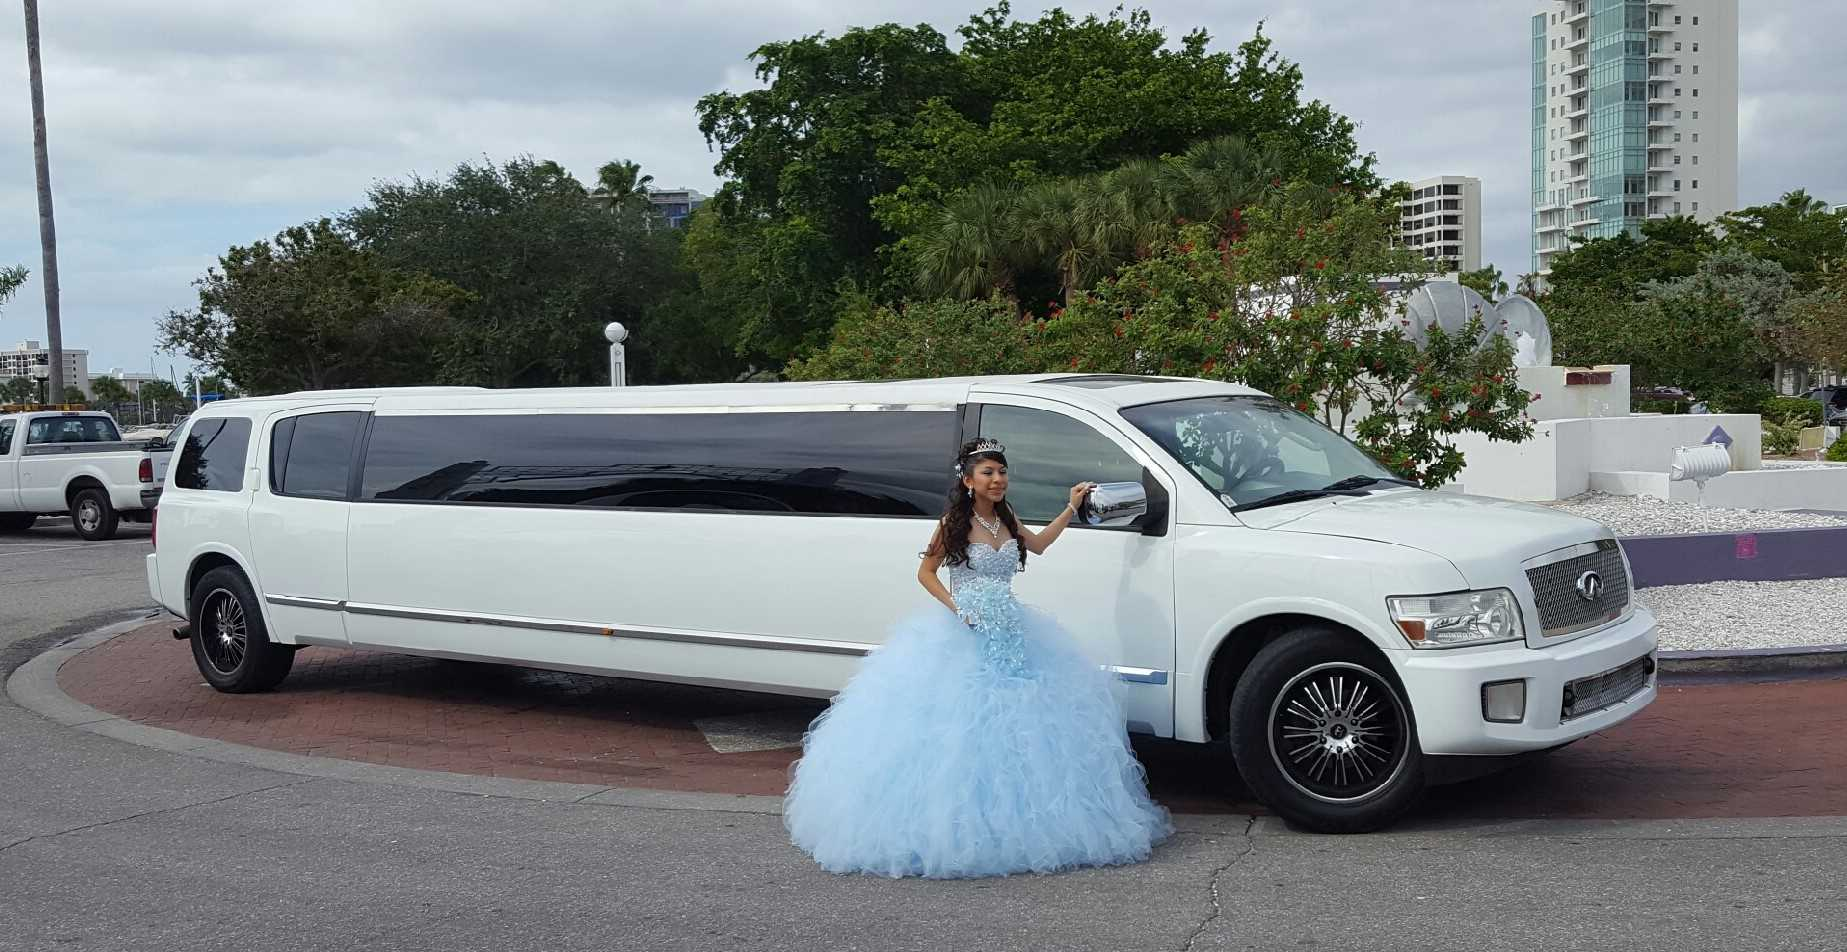 Is It Easy To Book Vehicles Like A Limo In Boston Or Any Other Country?